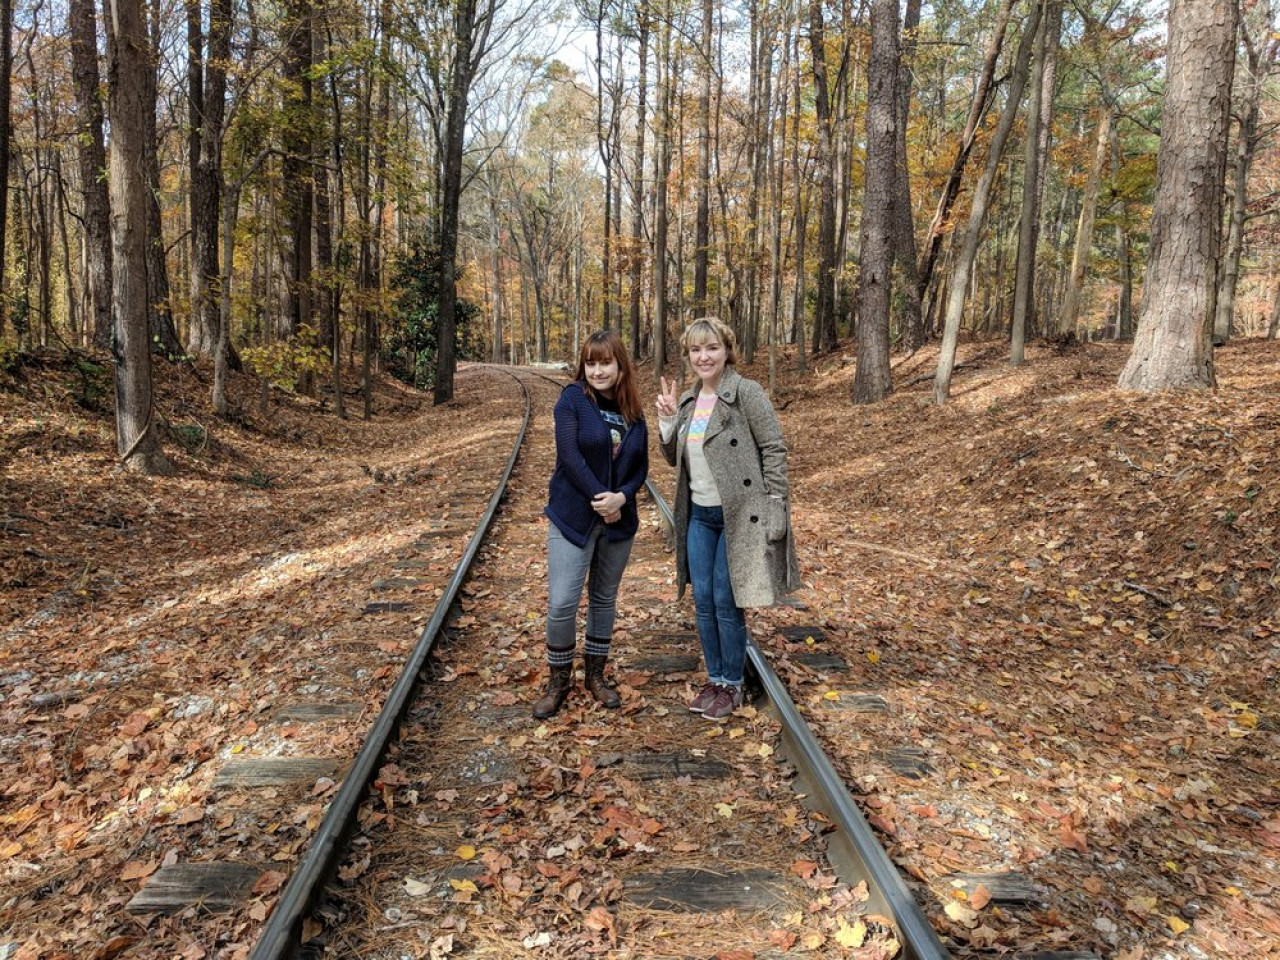 Here's Tori and Ash from The Upside Down podcast on location.